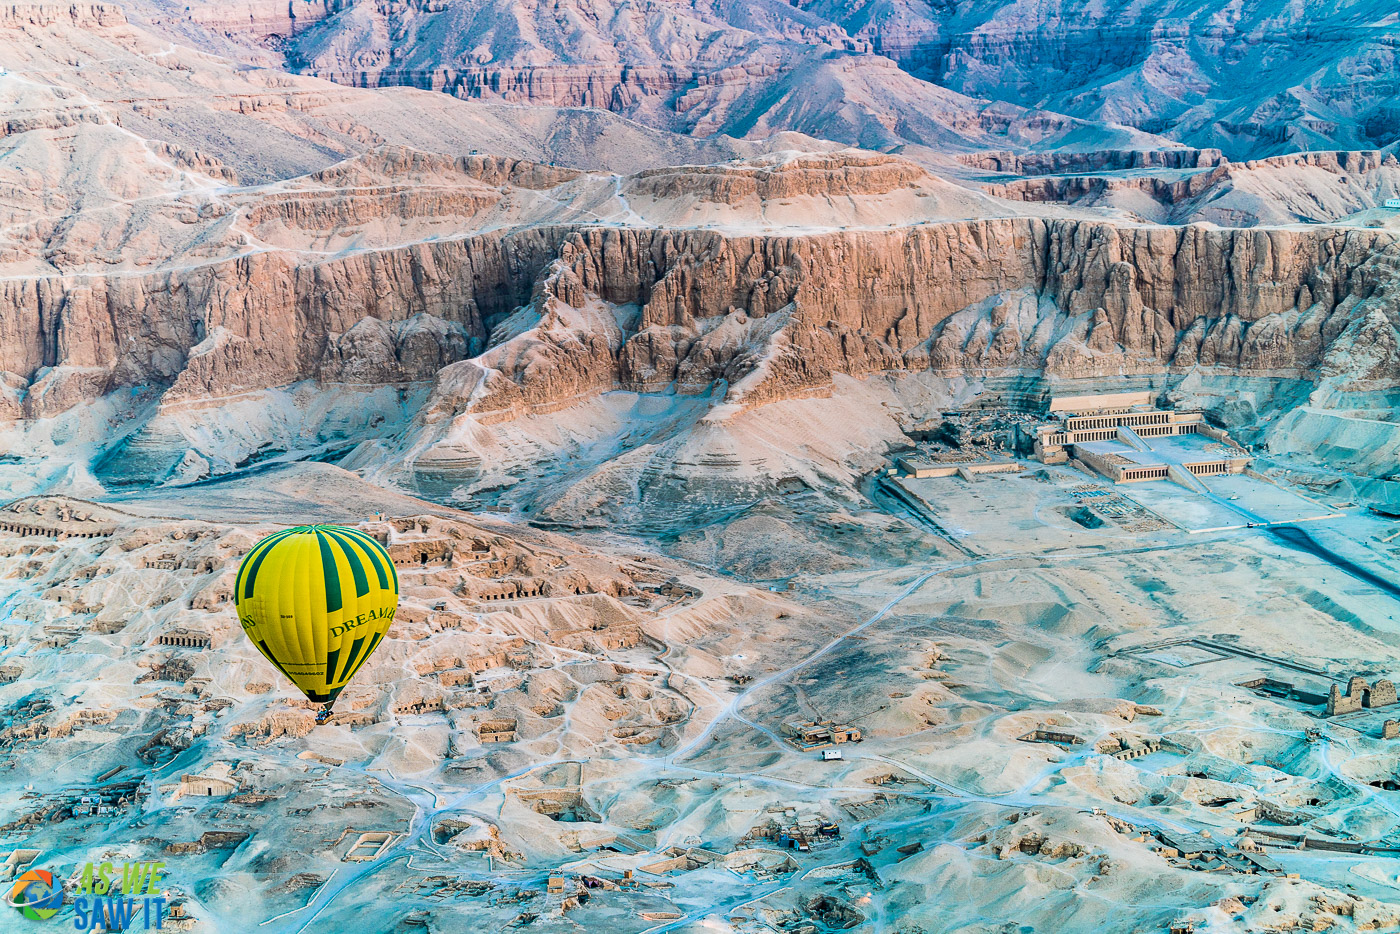 Sunrise balloon ride over Valley of the Kings and Hatshepsut Temple.